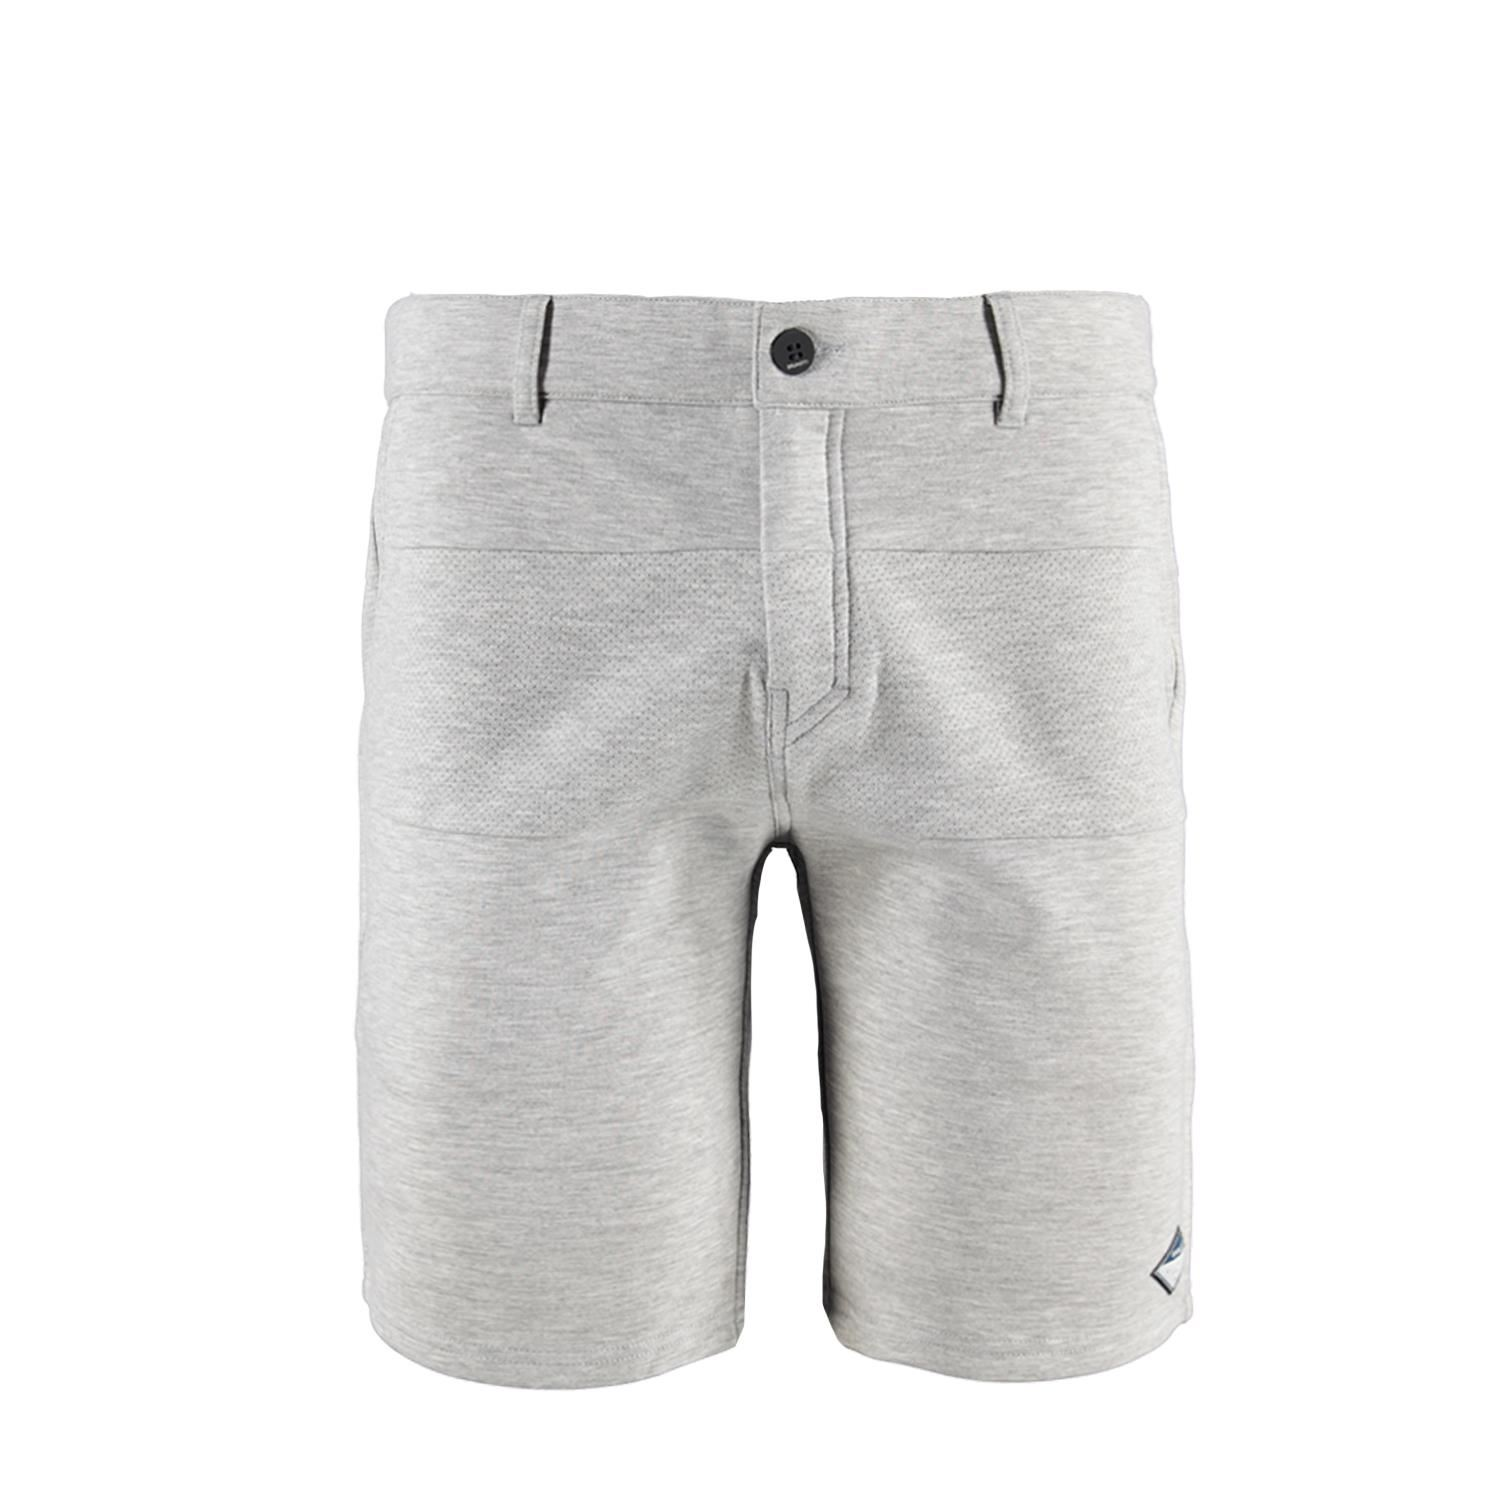 Brunotti Brunotti Lifeguard Men Sweatshort Shorts